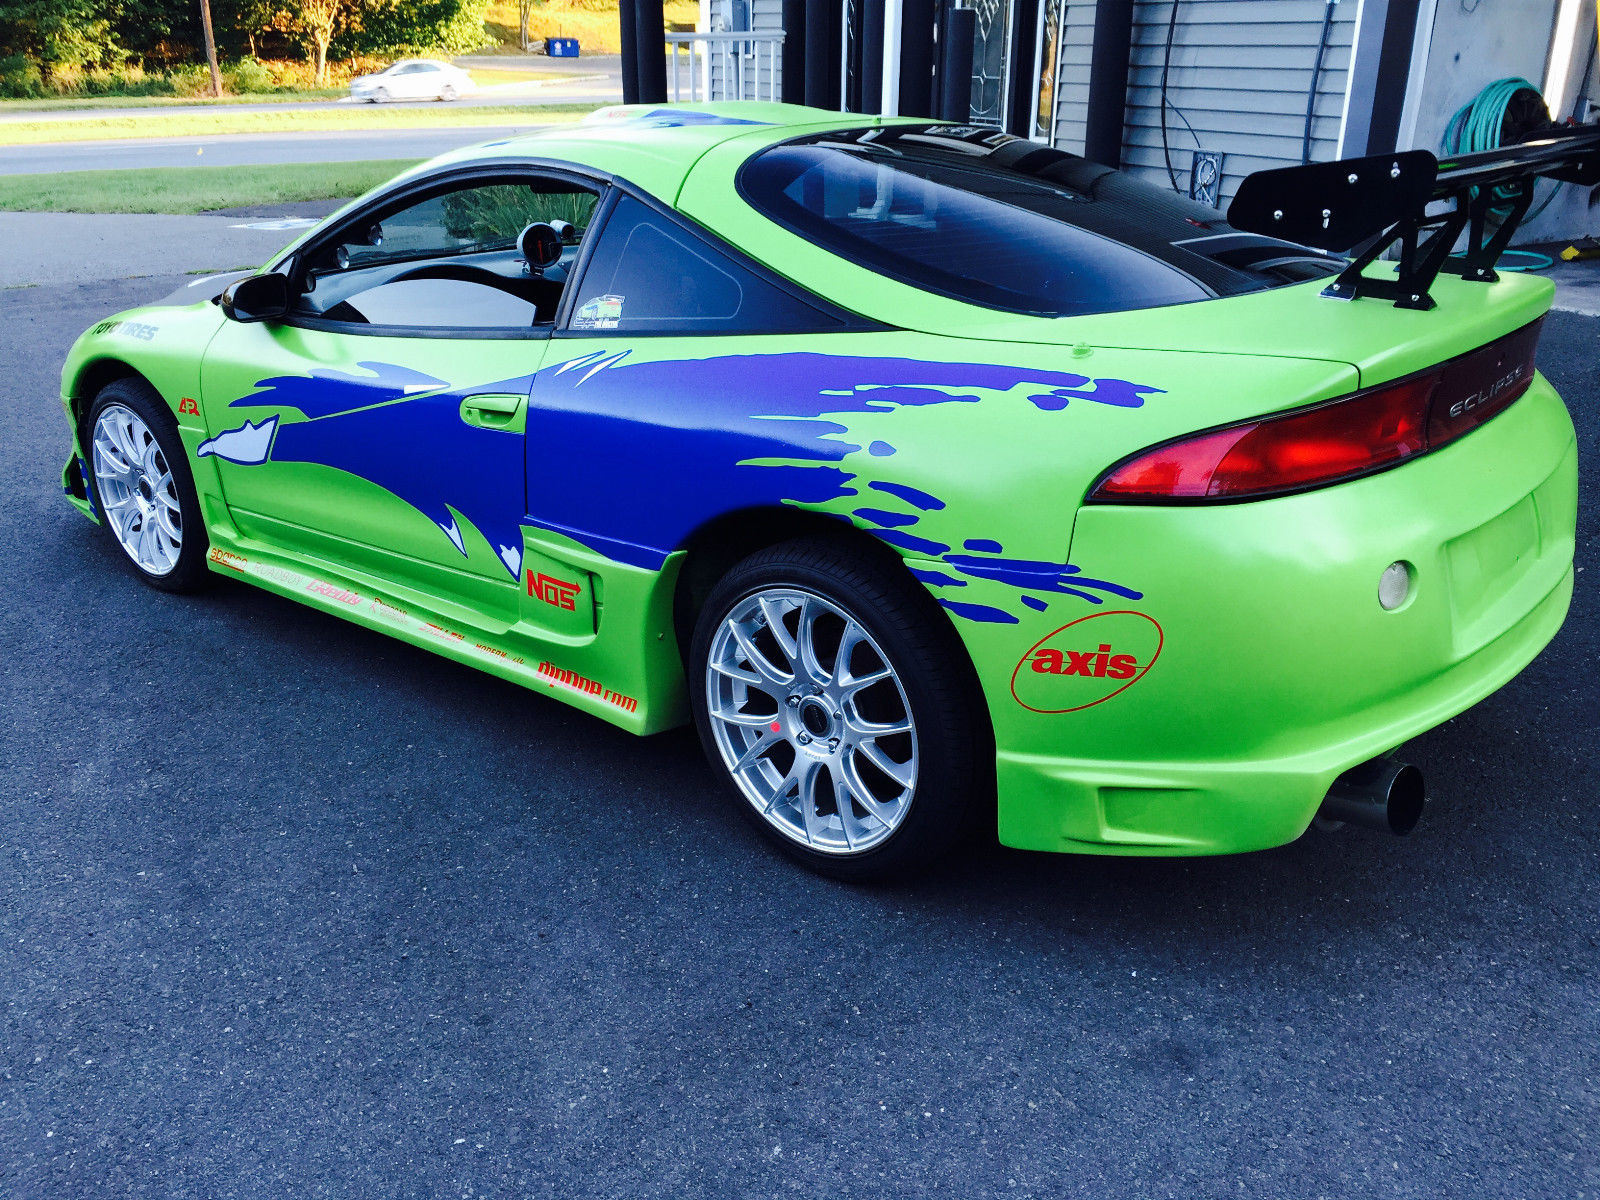 Replica of the Mitsubishi Eclipse Paul Walker Drove in The Fast and The Furious Is on Sale ...